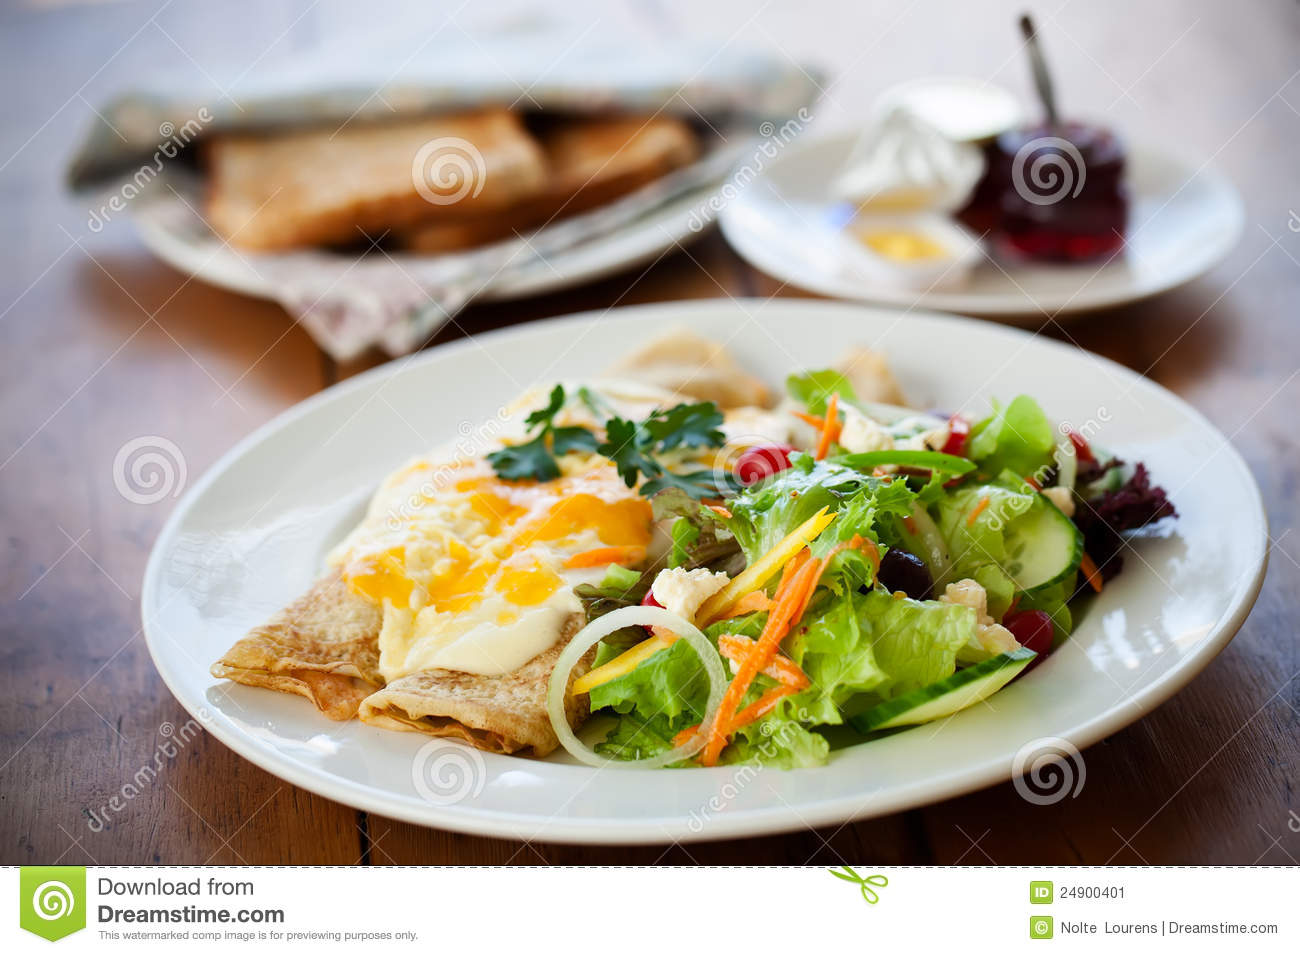 Eggs with salads